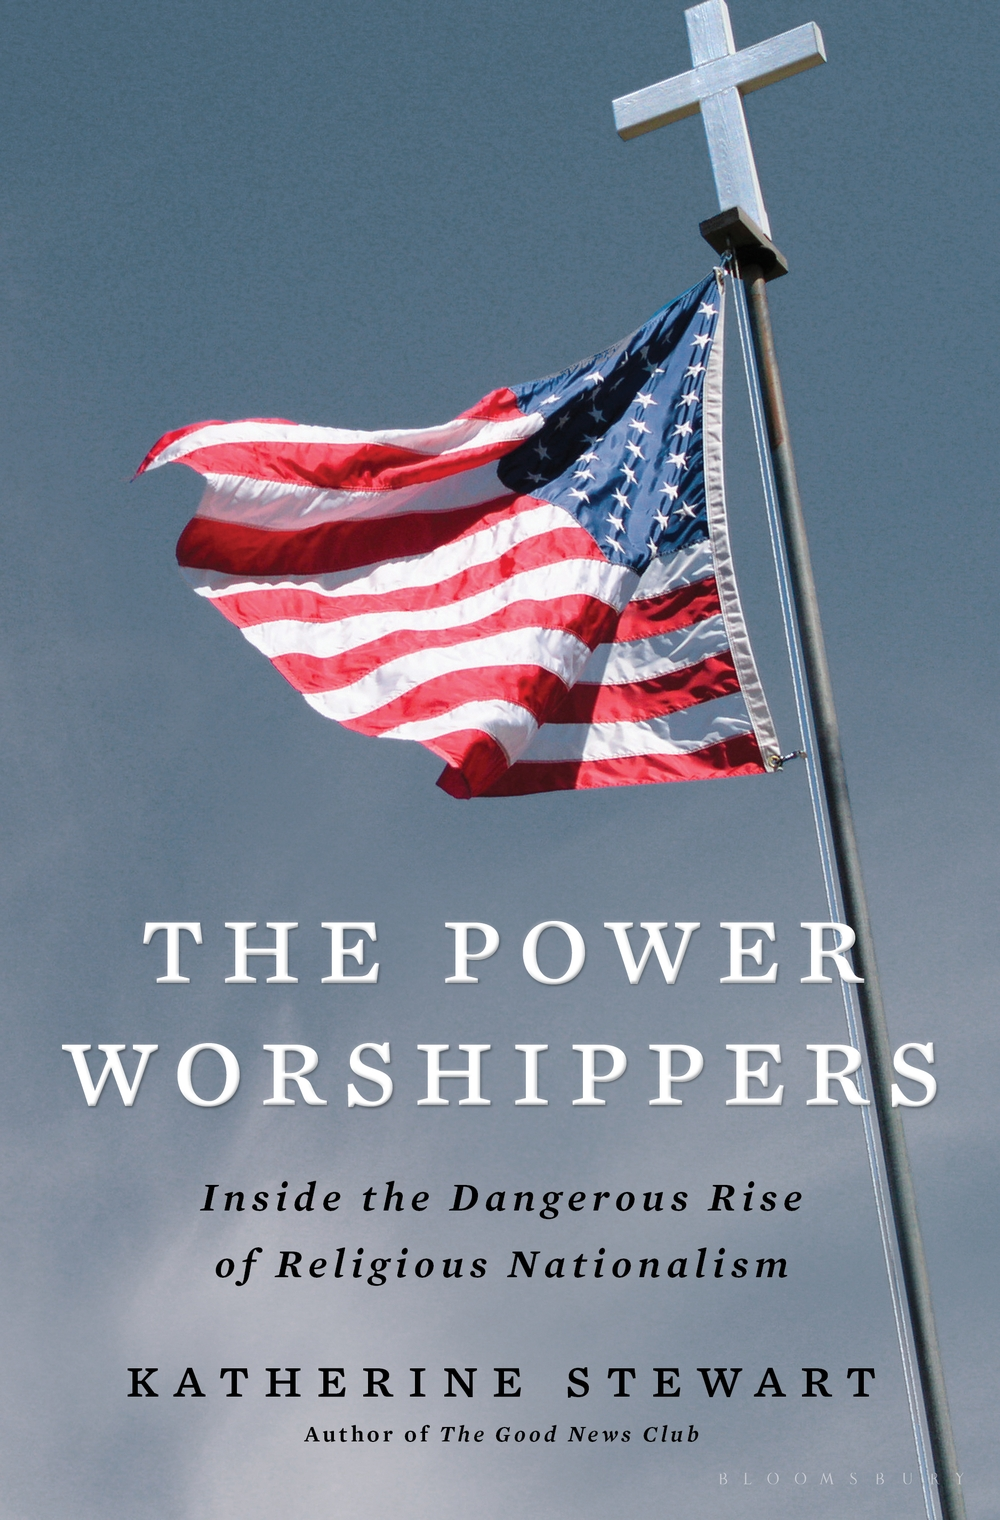 jacket art The Power Worshippers 9781635573435.jpg